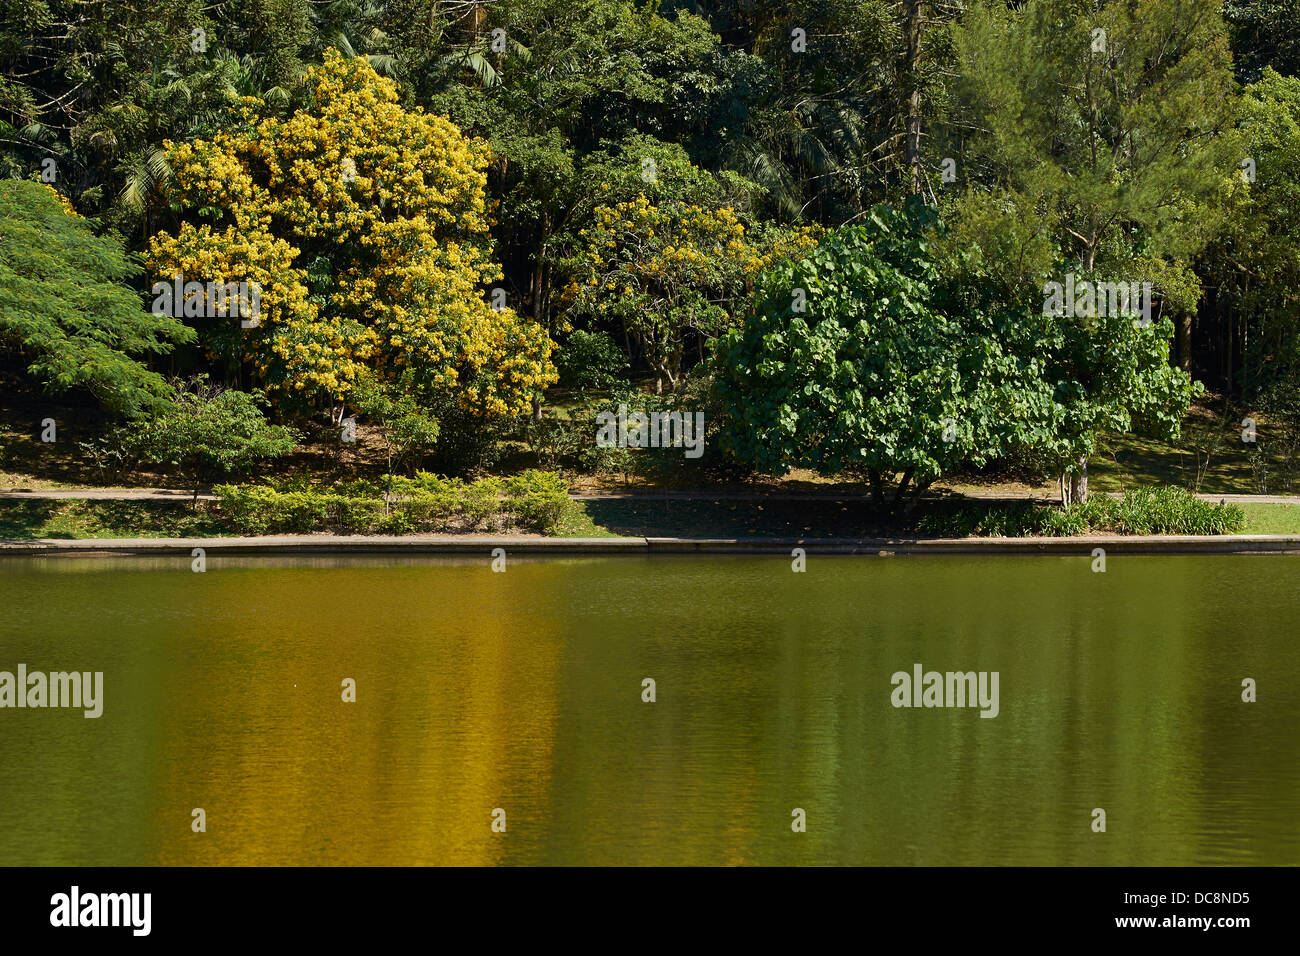 Flowering tree on the banks of a lake in the humid rainforest - Stock Image